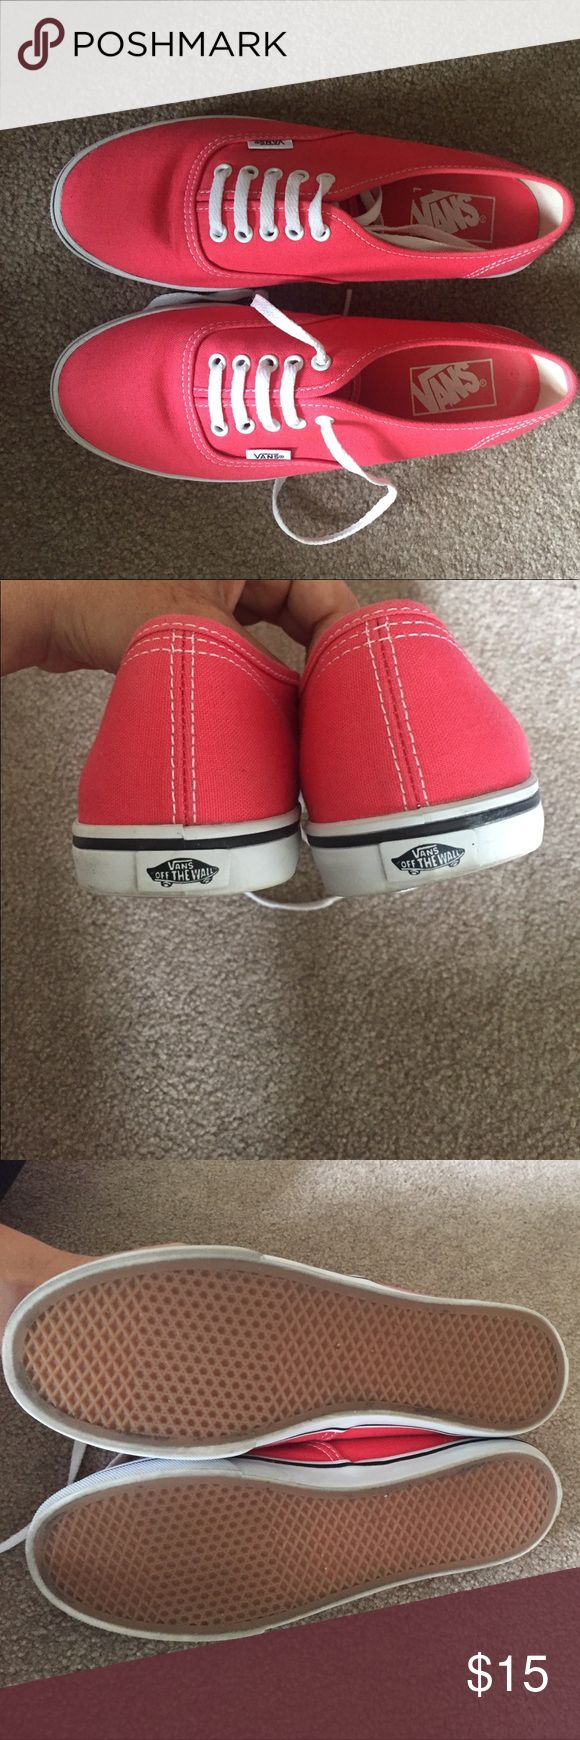 Coral Vans Coral Vans, only worn once! Vans Shoes Sneakers